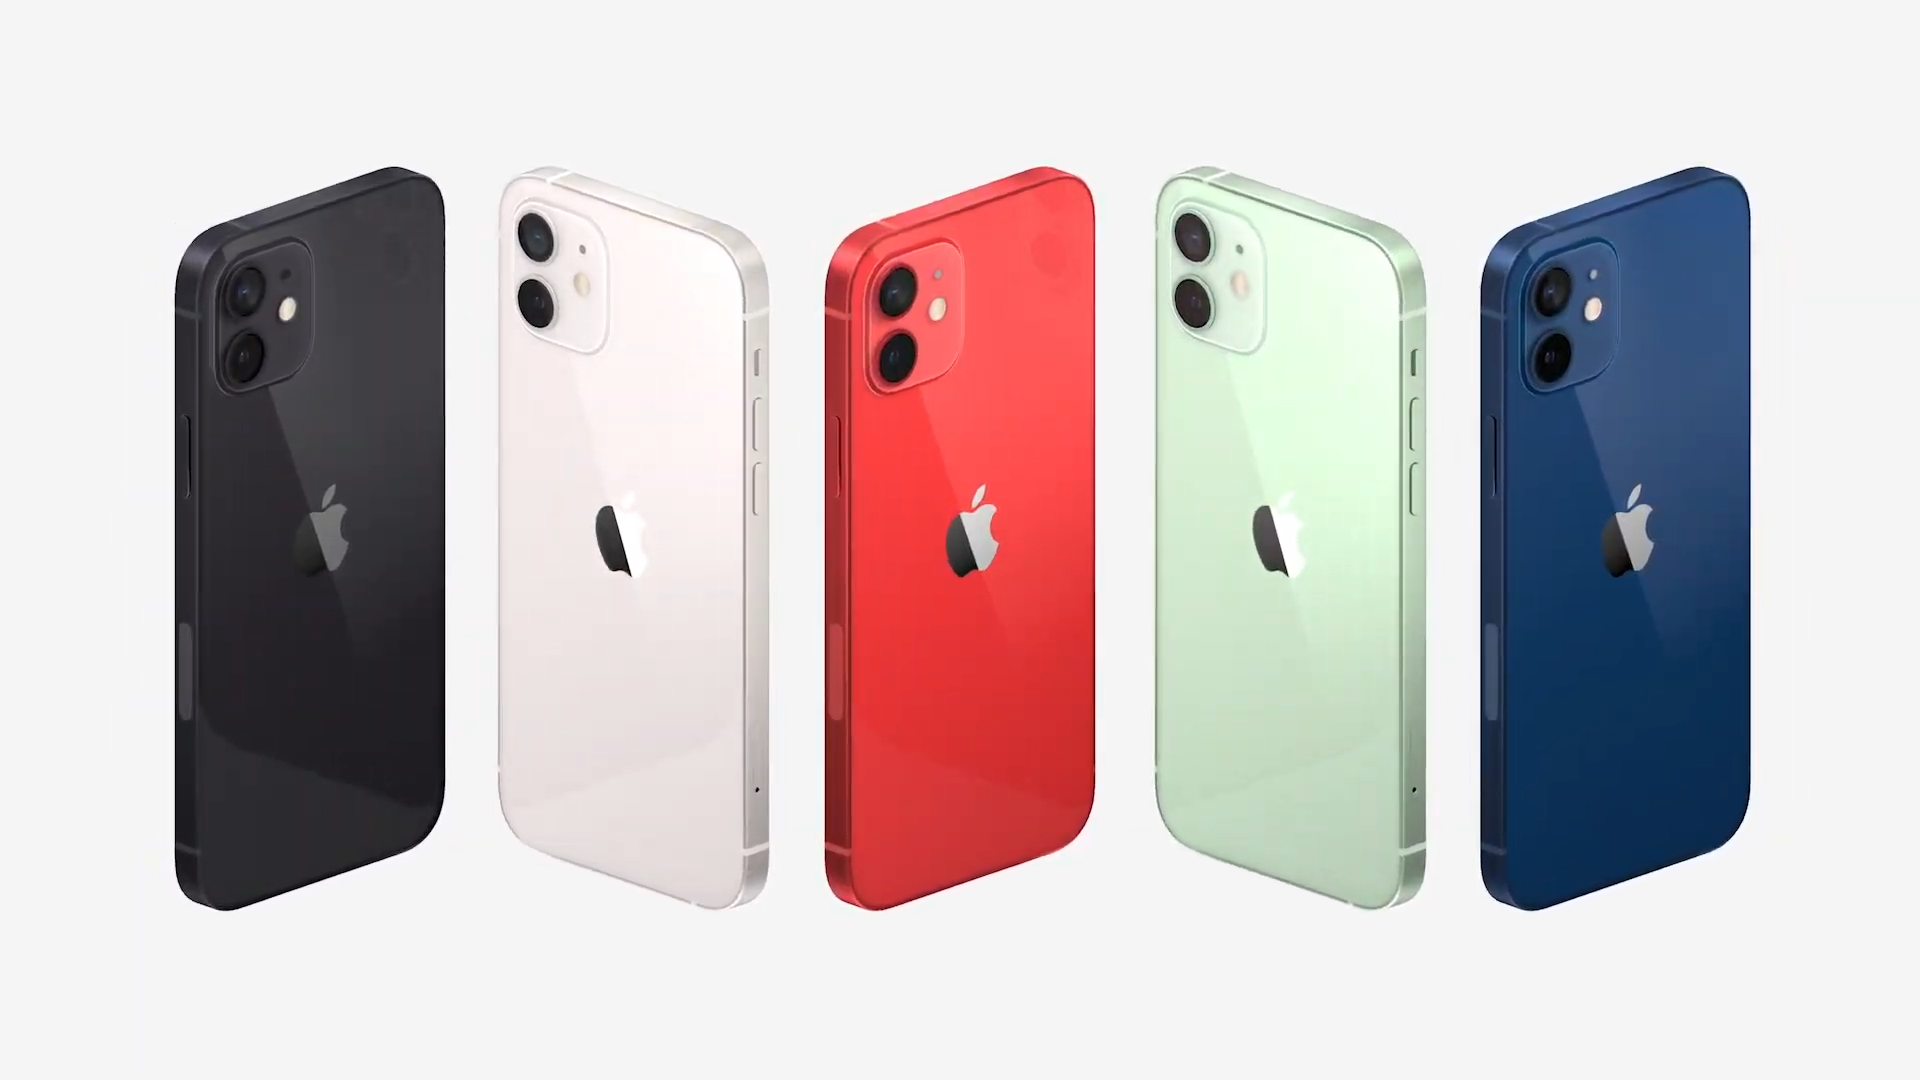 1602618032 353 Apple officially unveils iPhone 12 iPhone 12 mini iPhone 12